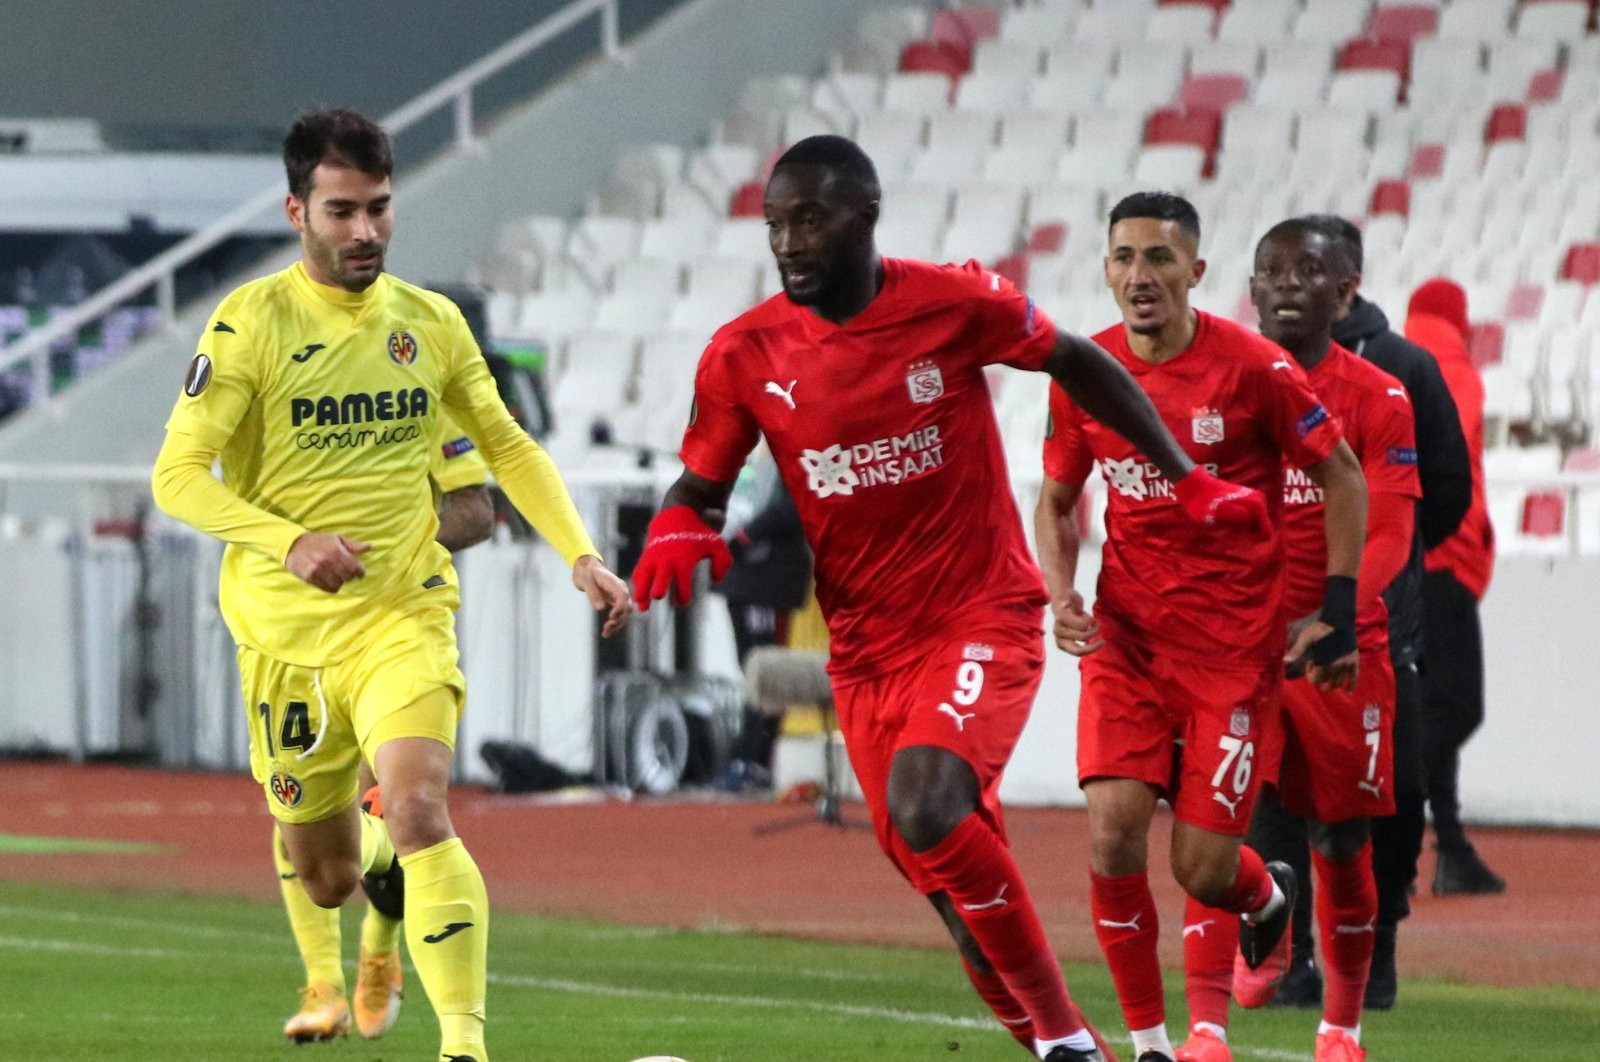 Sivasspor's Yatabare (R) in action against Villarreal's Trigueros during a match in Sivas, central Turkey, Dec. 3, 2020. (AA PHOTO)